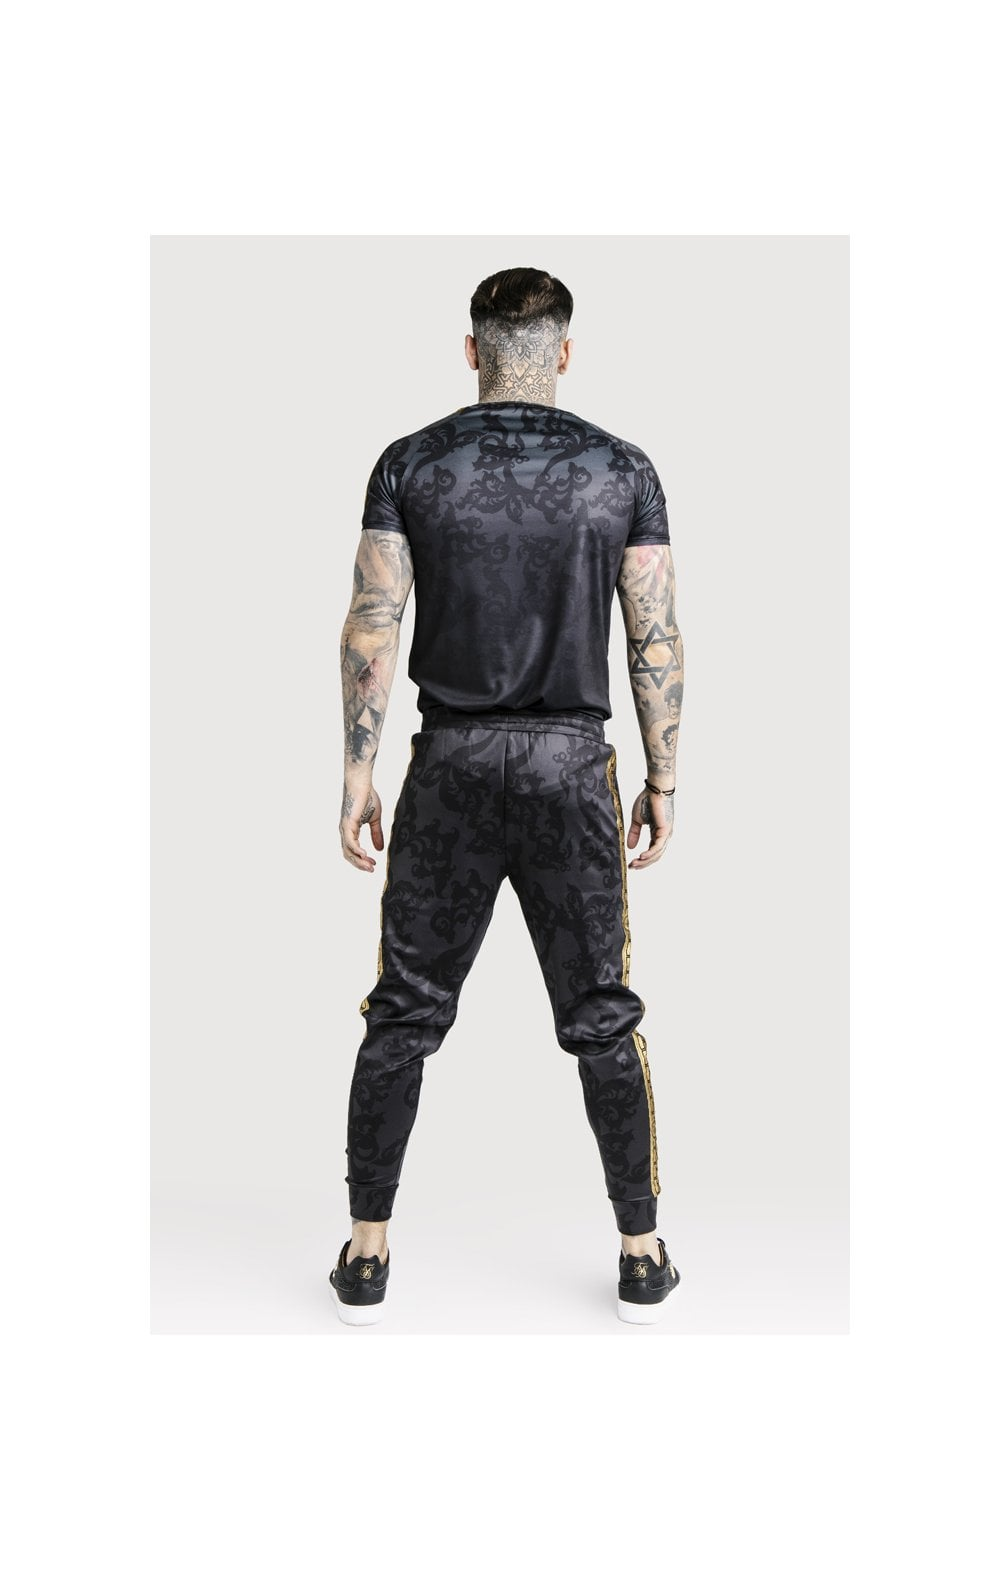 Load image into Gallery viewer, SikSilk x Dani Alves Taped Gym Tee - Black (4)